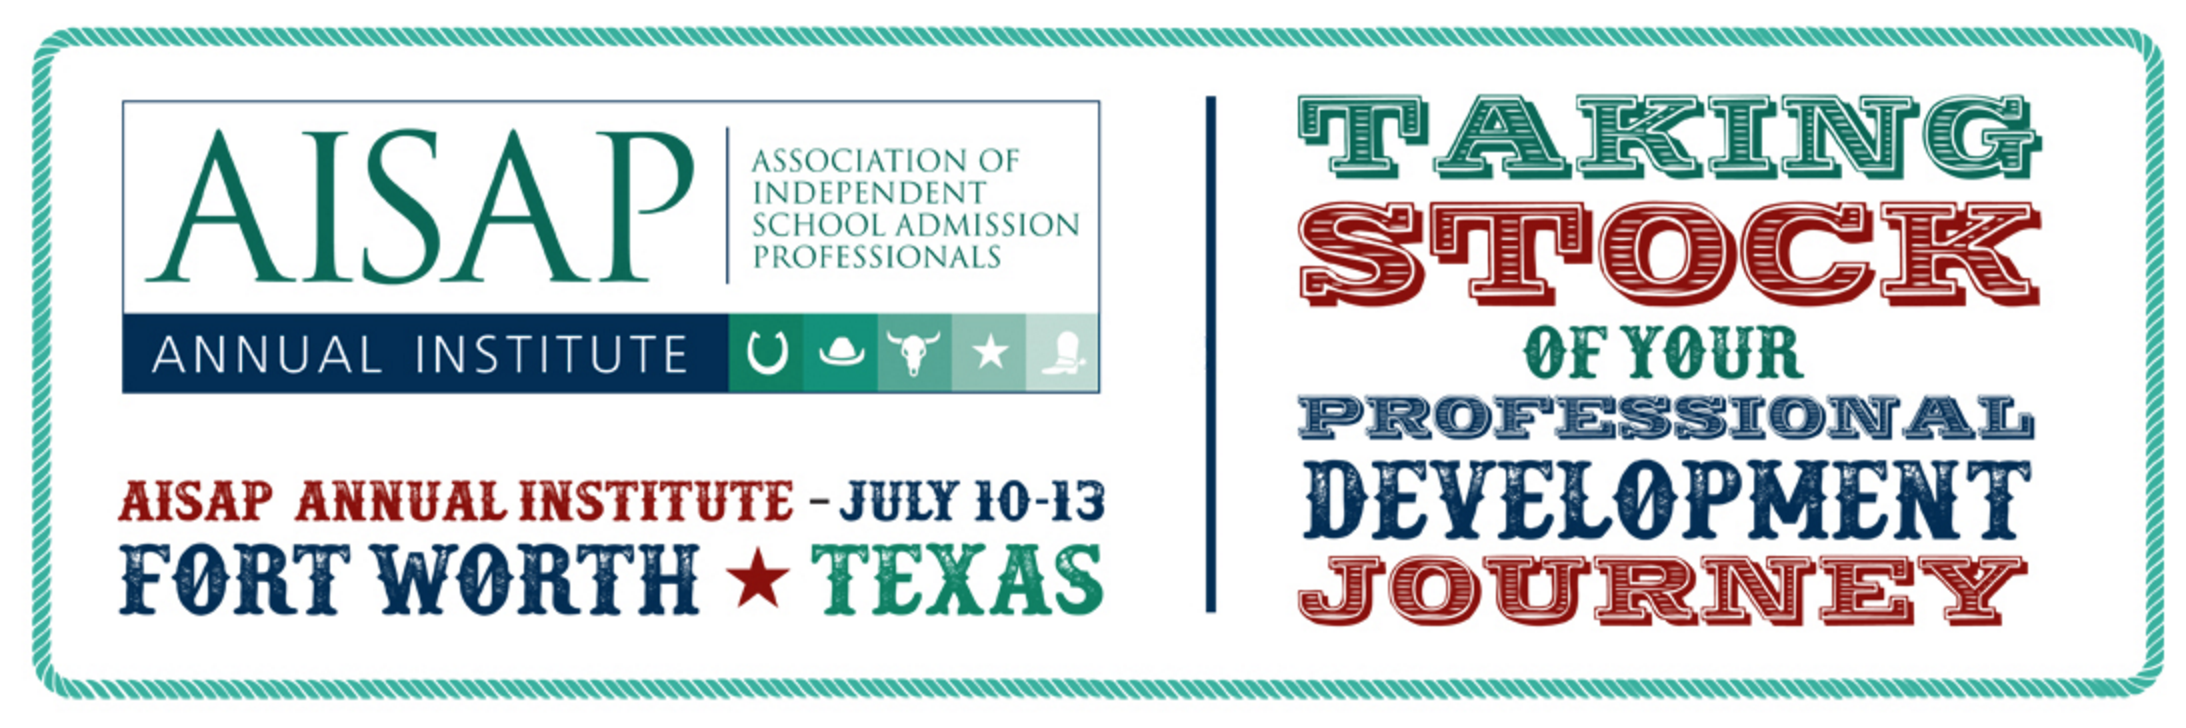 @AISAPinfo comes to Fort Worth for 11th Annual Institute in Texas